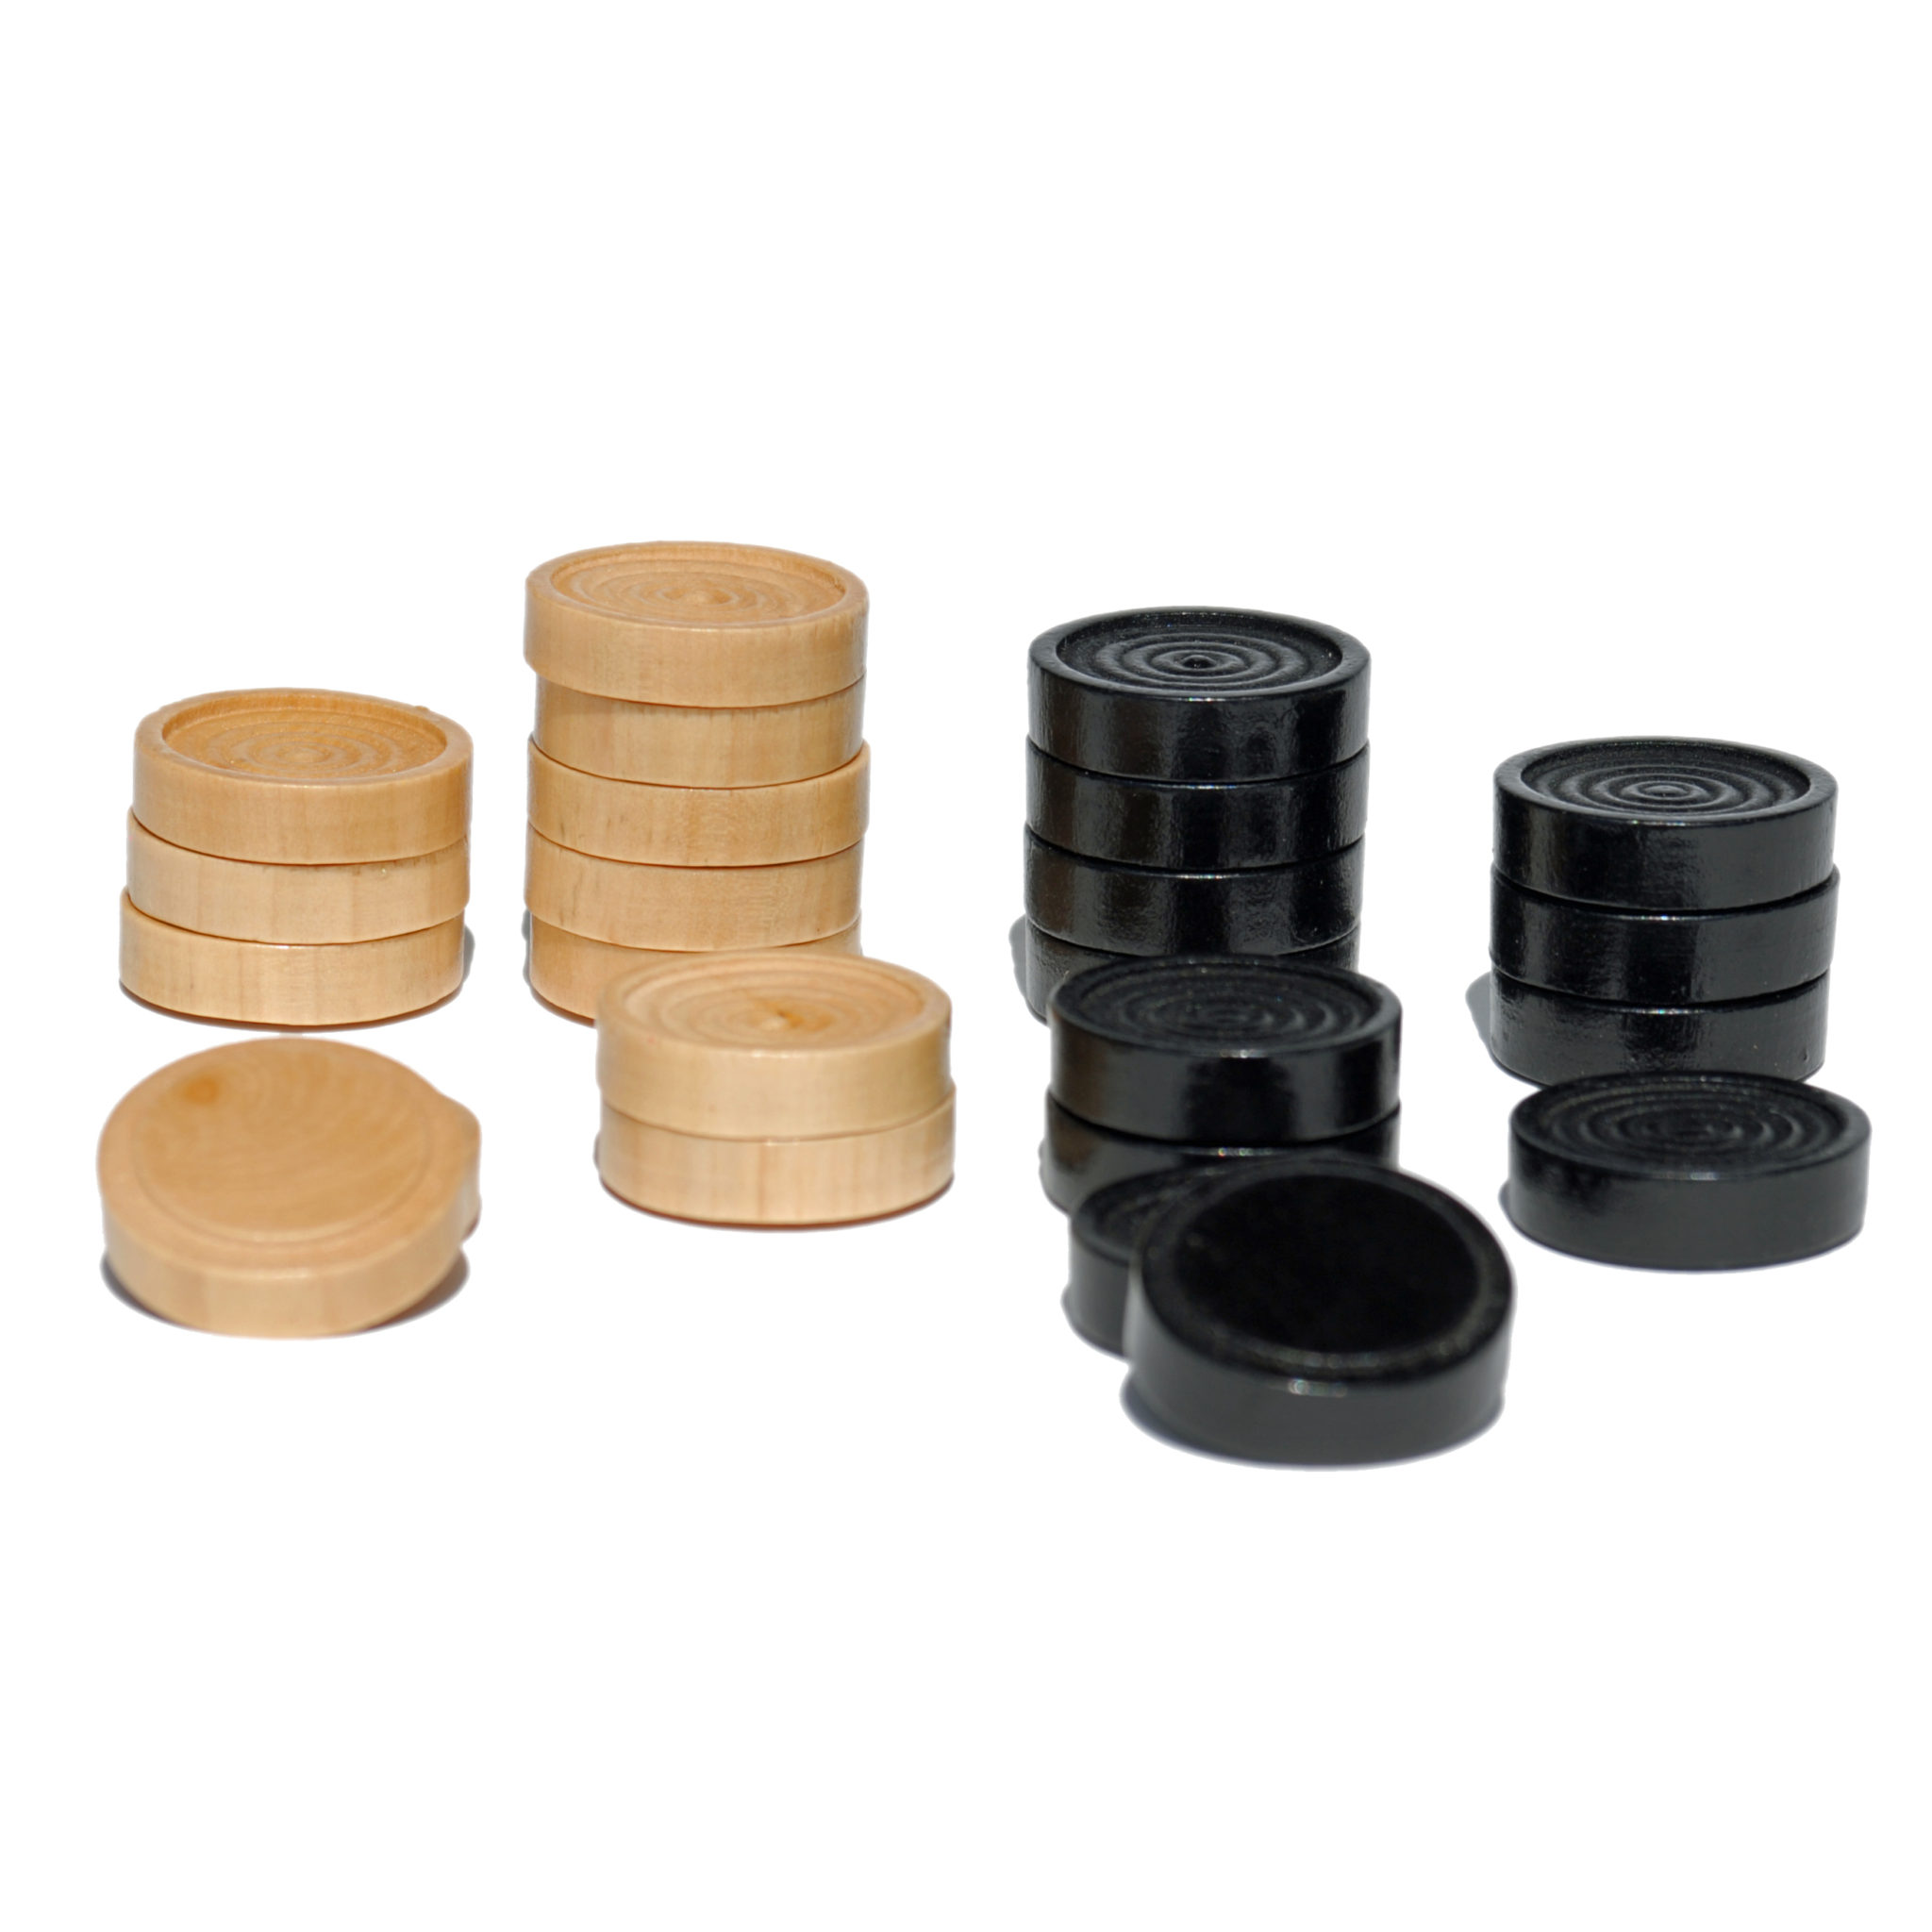 Checkers Pieces in Black and Natural Wood – 1.5 in ...